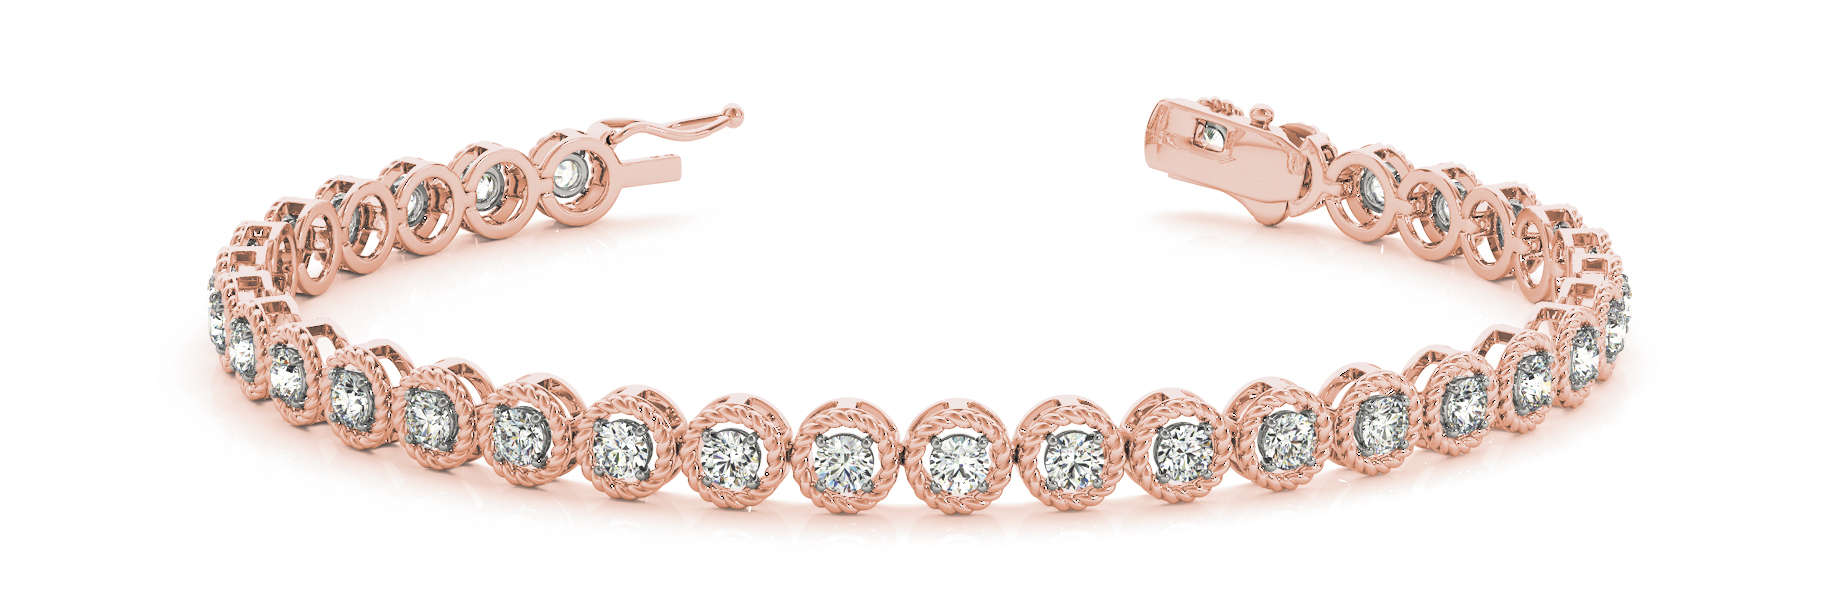 1.98 Carat Round Diamond Rope Bracelet Rose Gold